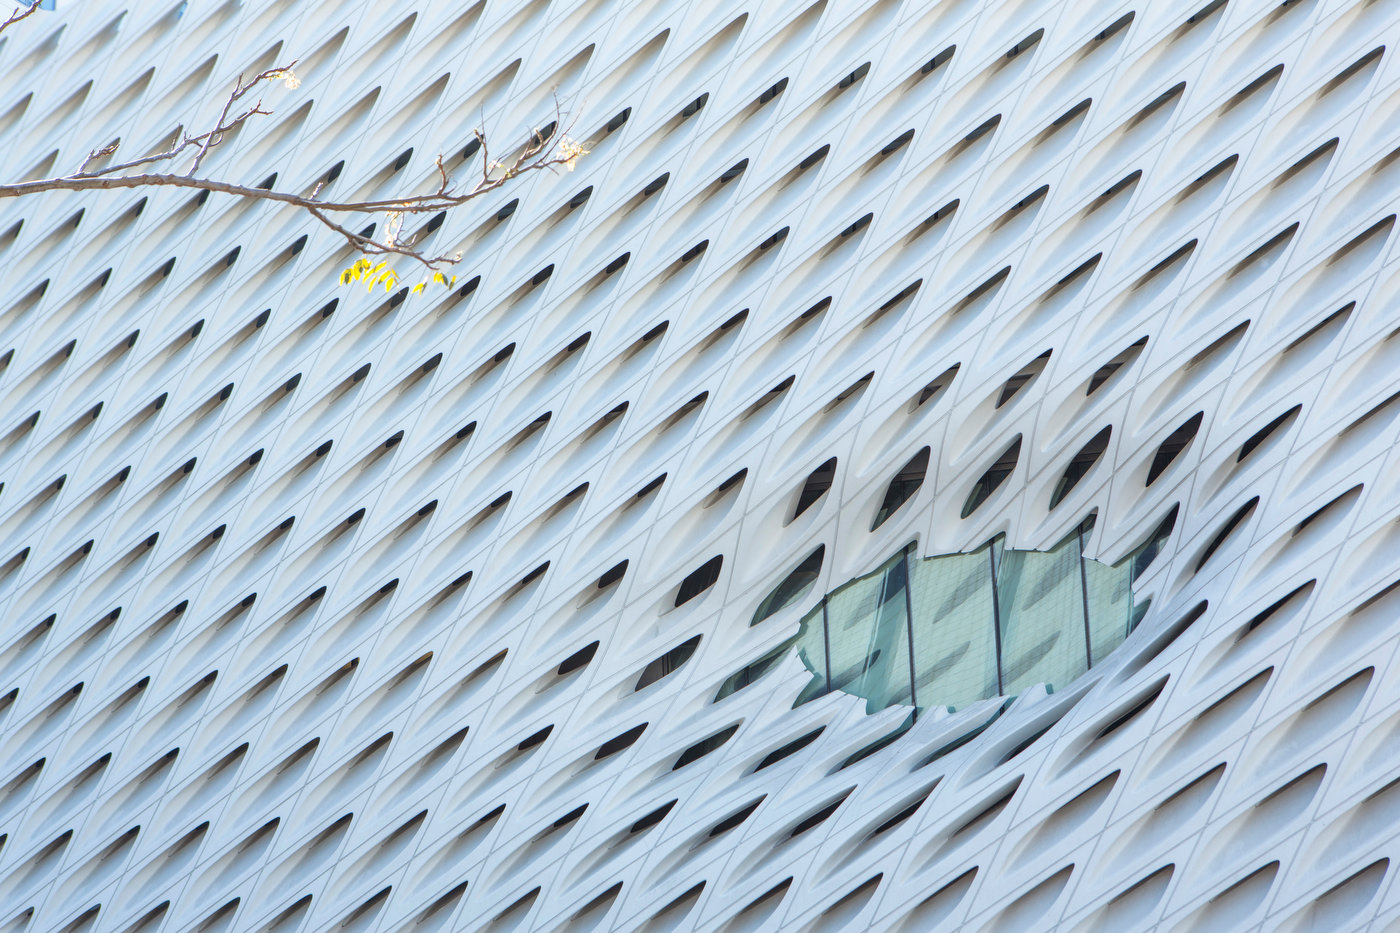 Broad Museum, Los Angeles (for The Good Life).